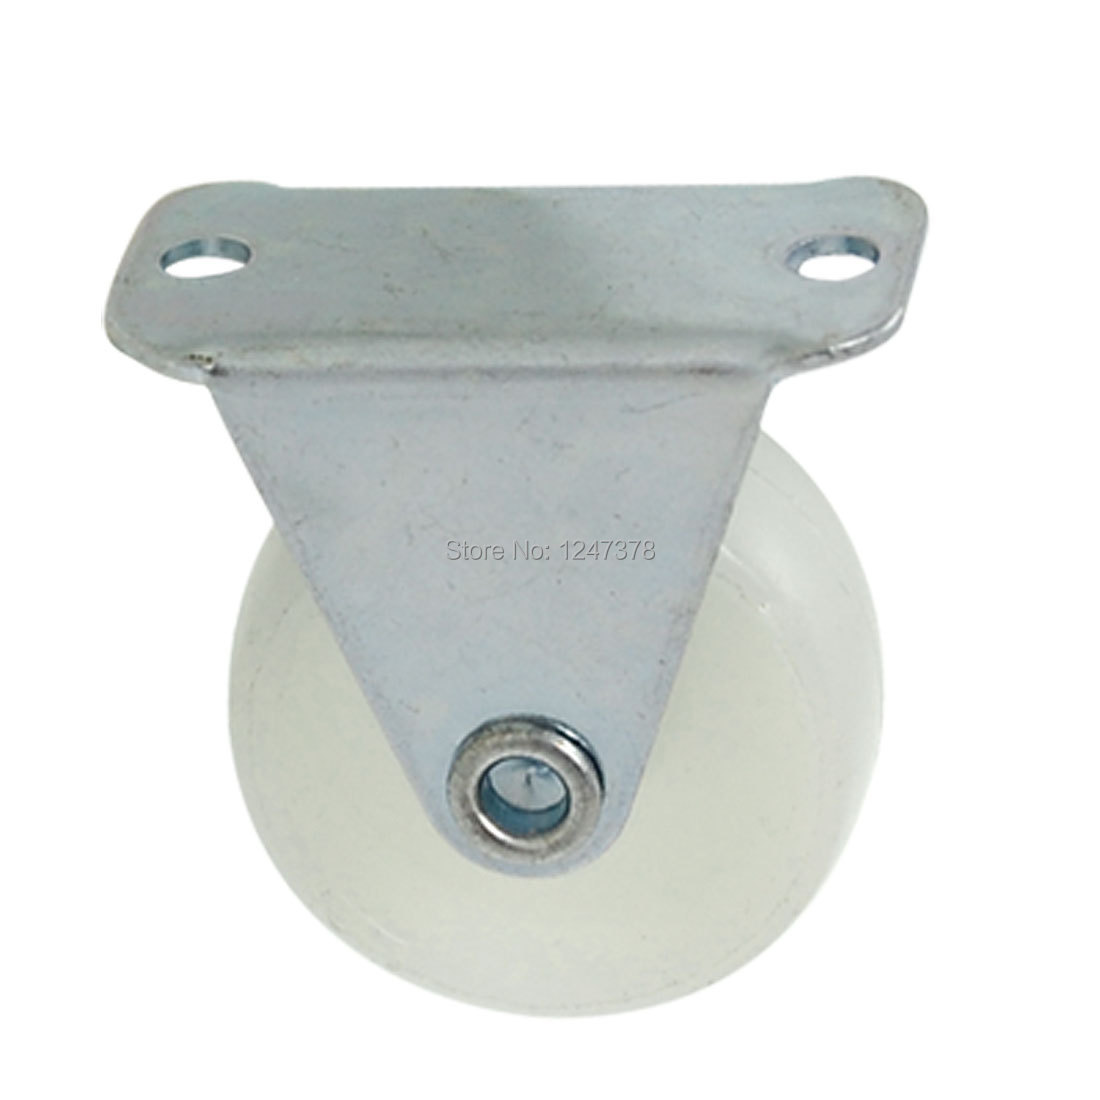 "Equipment 1.2"" Fixed Metal Plate Light Duty PP Caster(China (Mainland))"